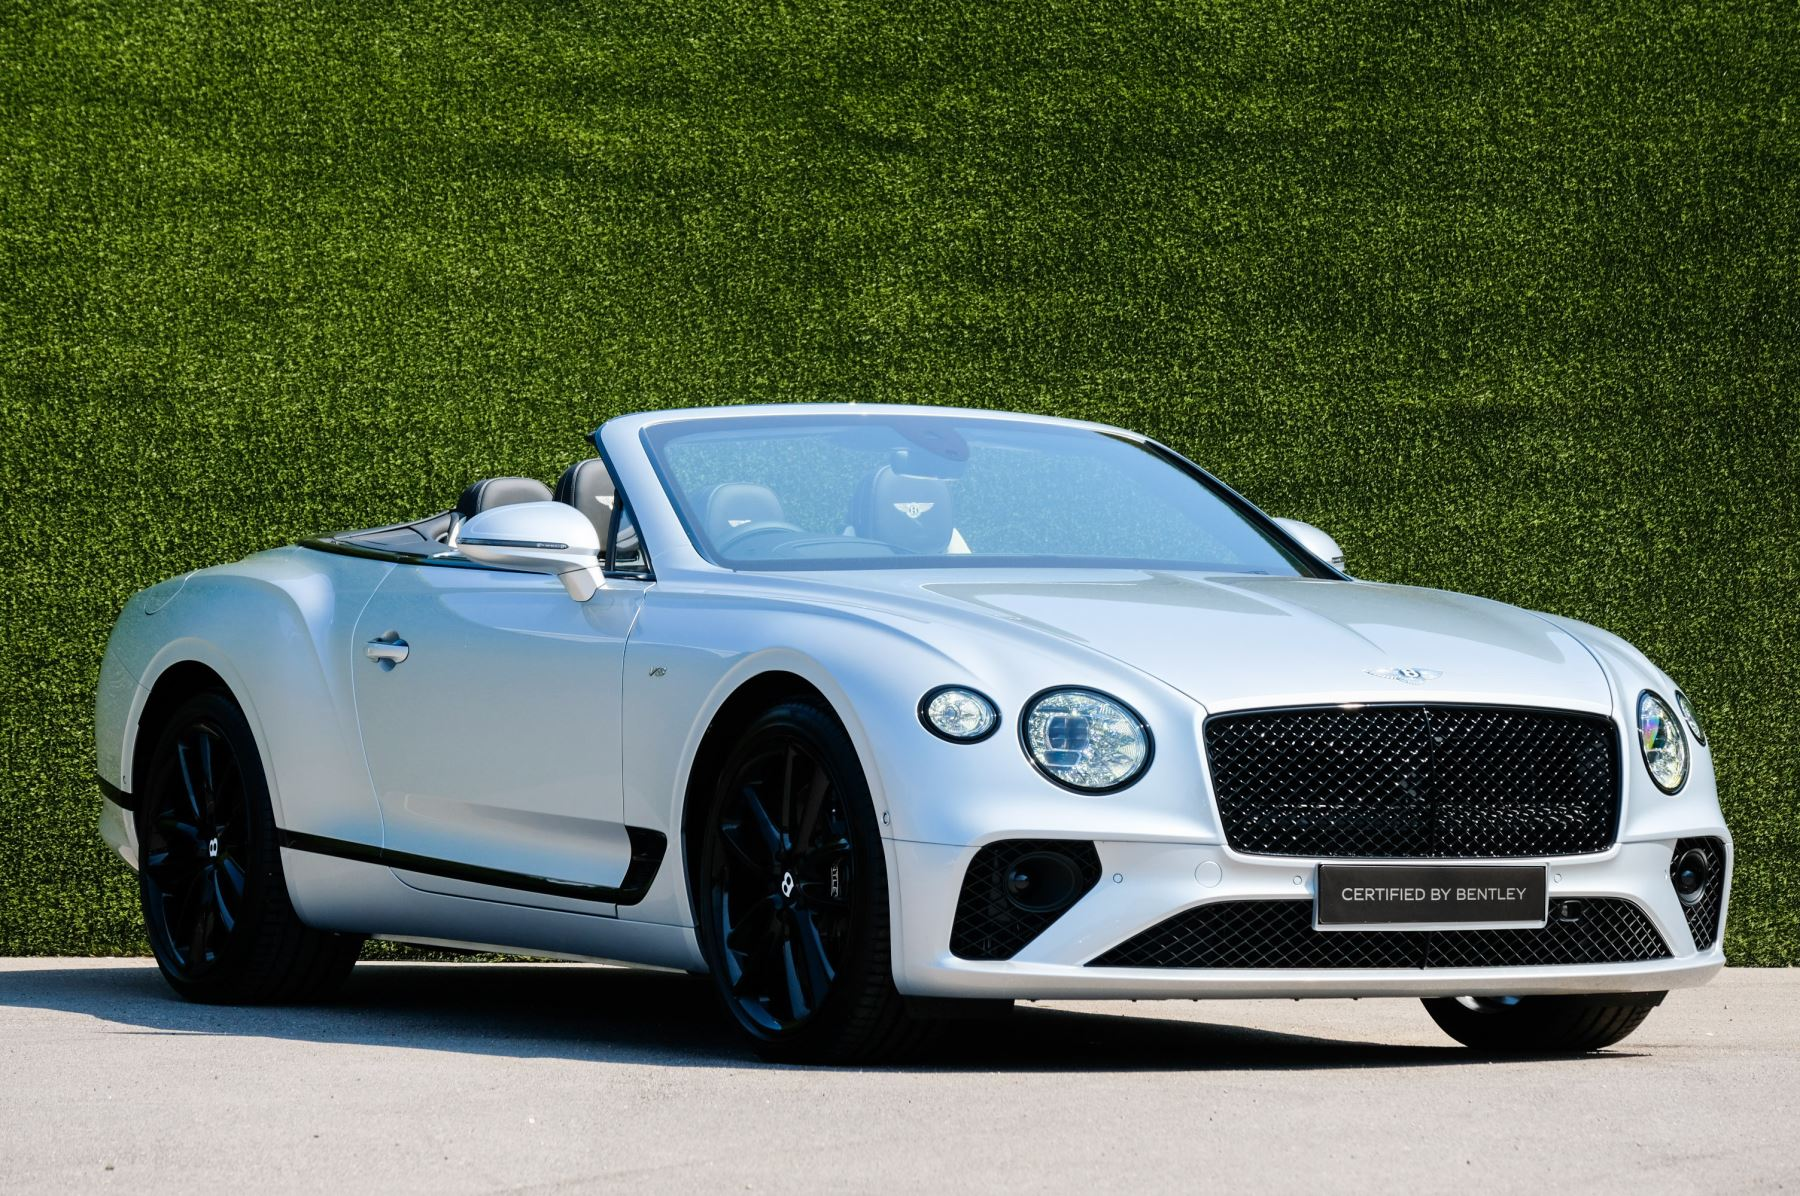 Bentley Continental GTC 4.0 V8 - Mulliner Driving Specification and Blackline Specification with 22 Inch Alloys Automatic 2 door Convertible (2021)